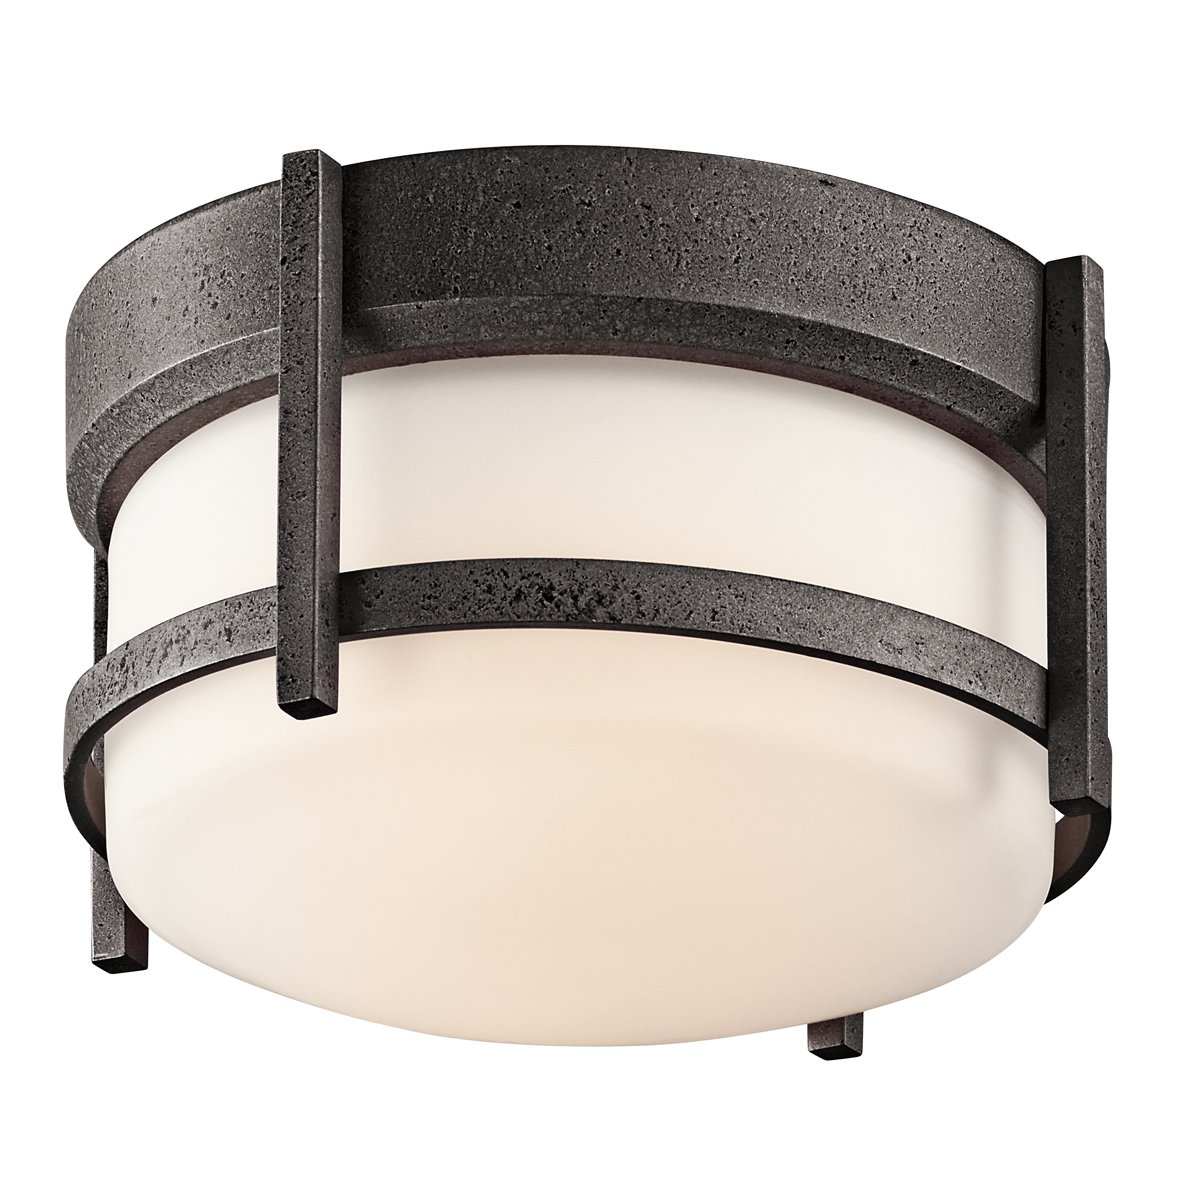 Kichler 49125AVI One Light Outdoor Ceiling Mount   Close To Ceiling Light  Fixtures   Amazon.com